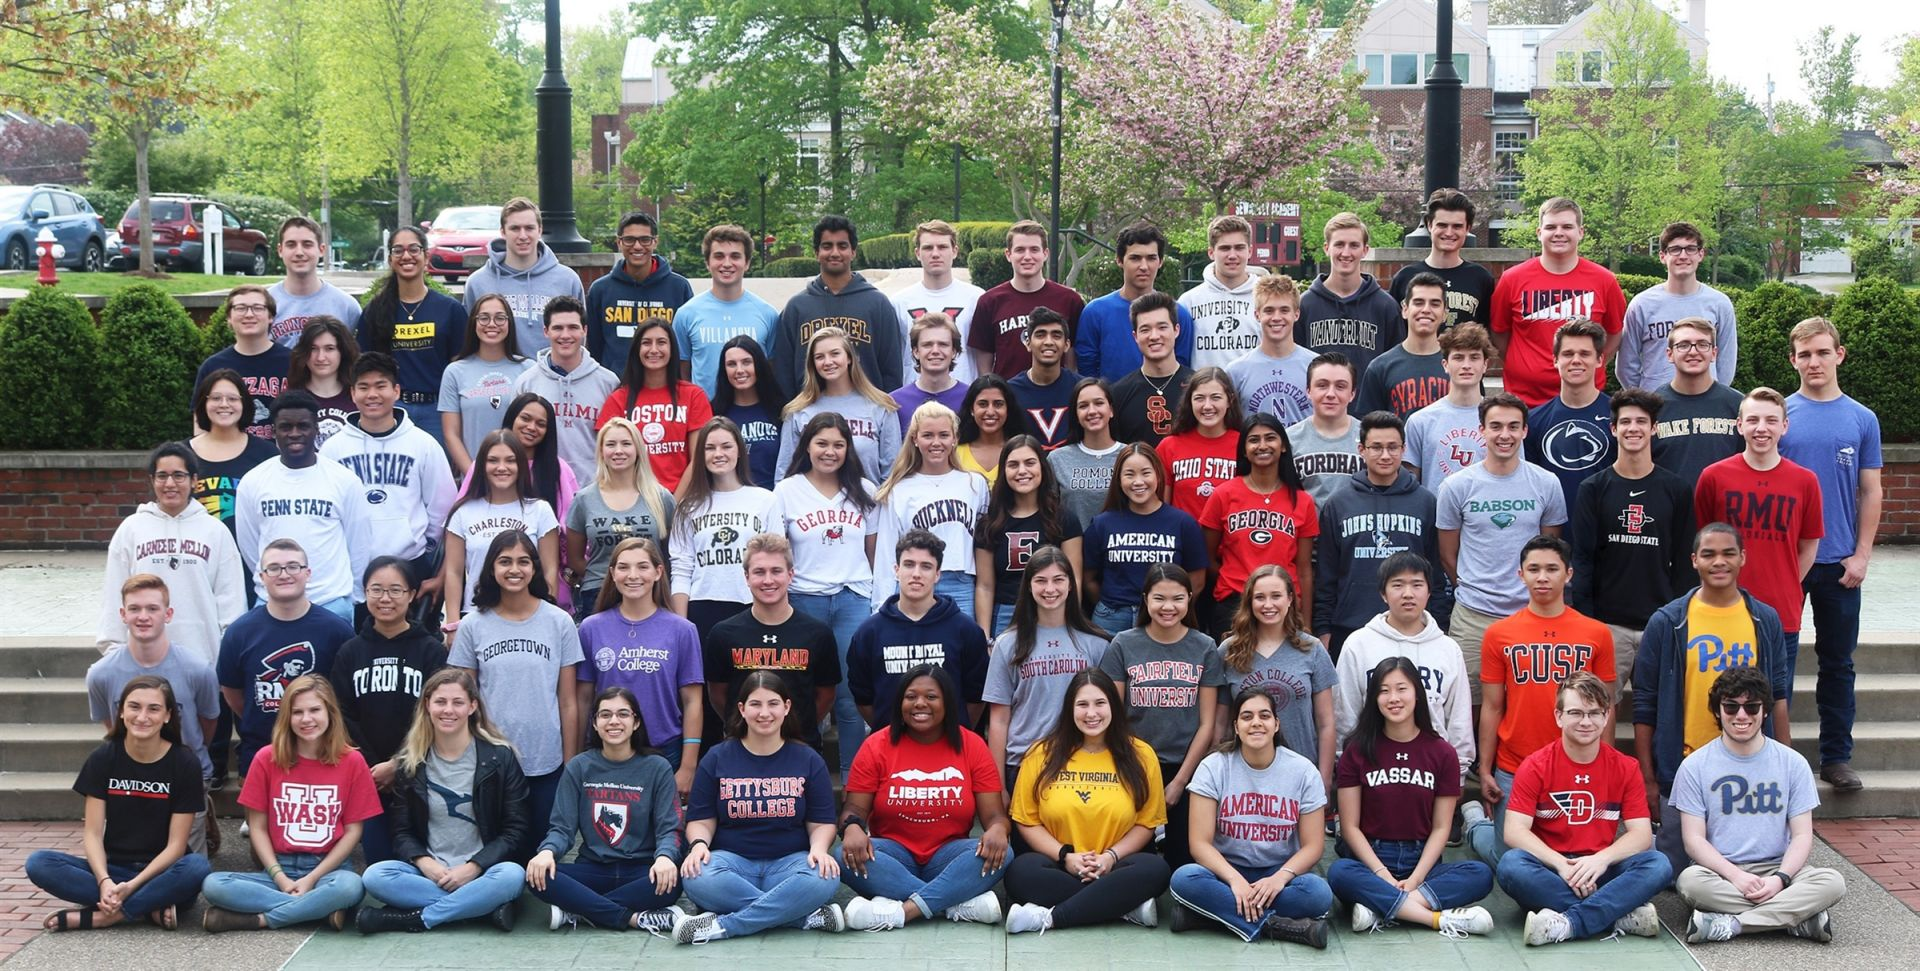 Check out the Class of 2019 wearing shirts representing their college choices.